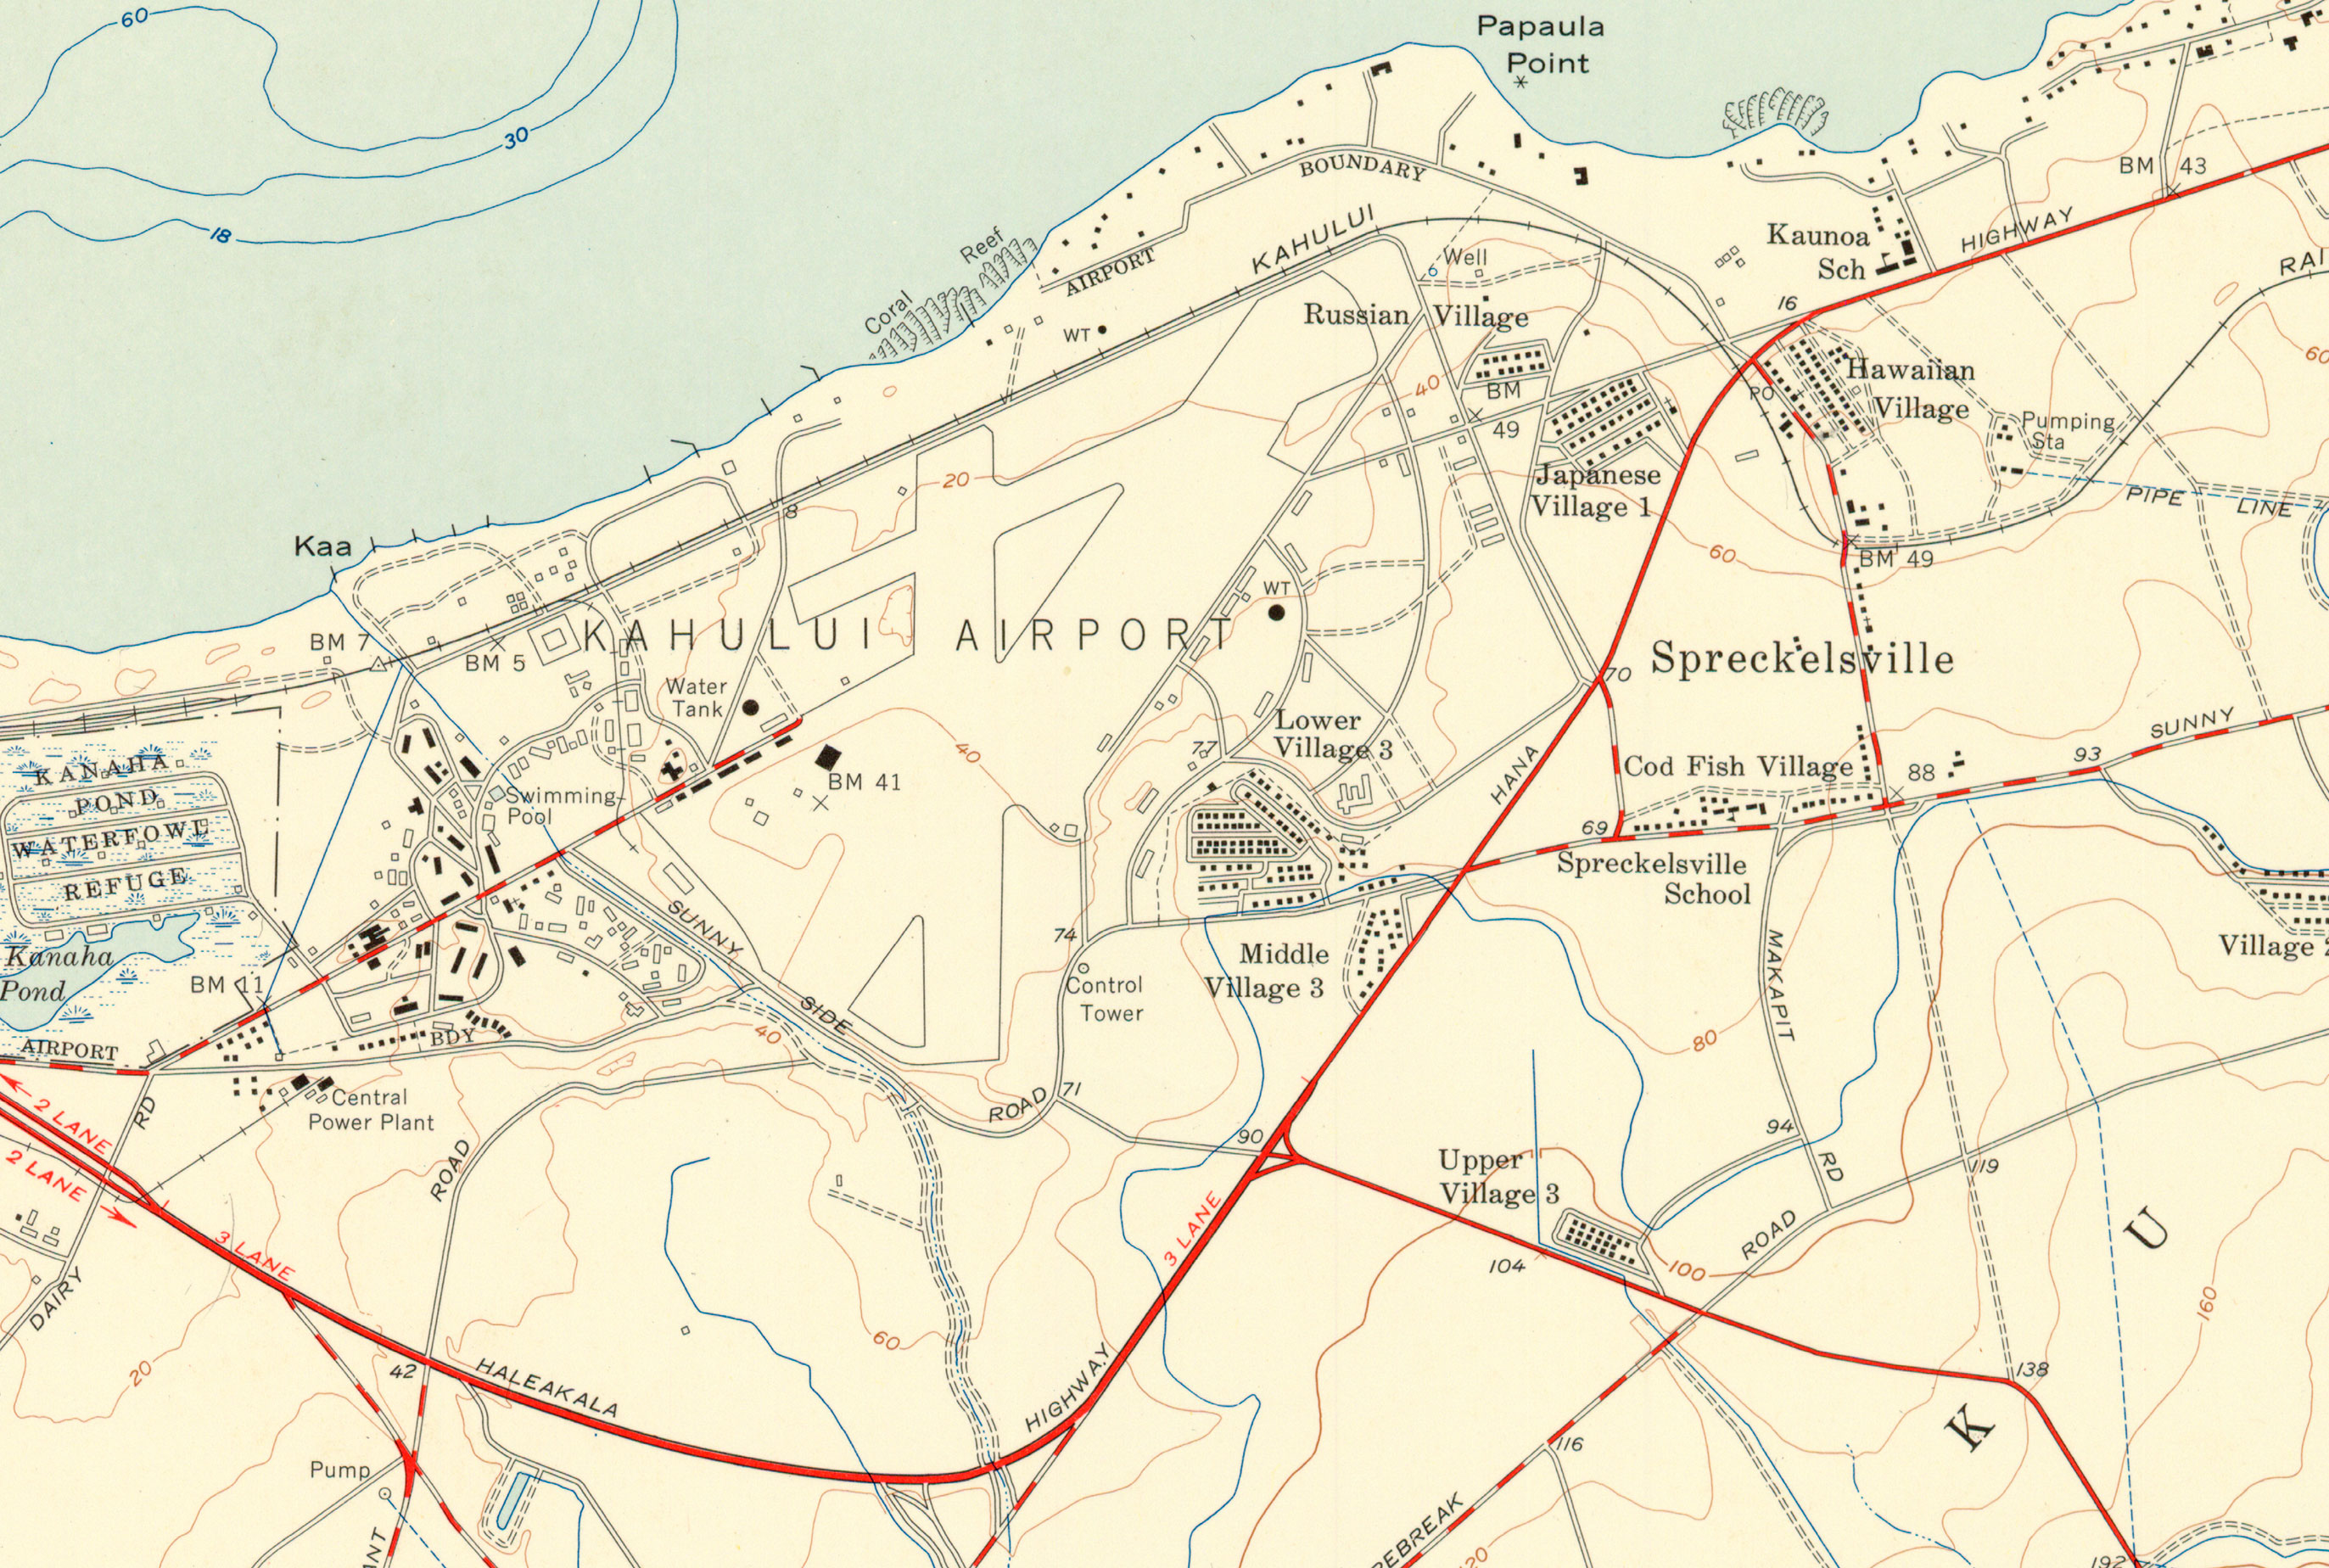 Map of Kahului Airport, 1954